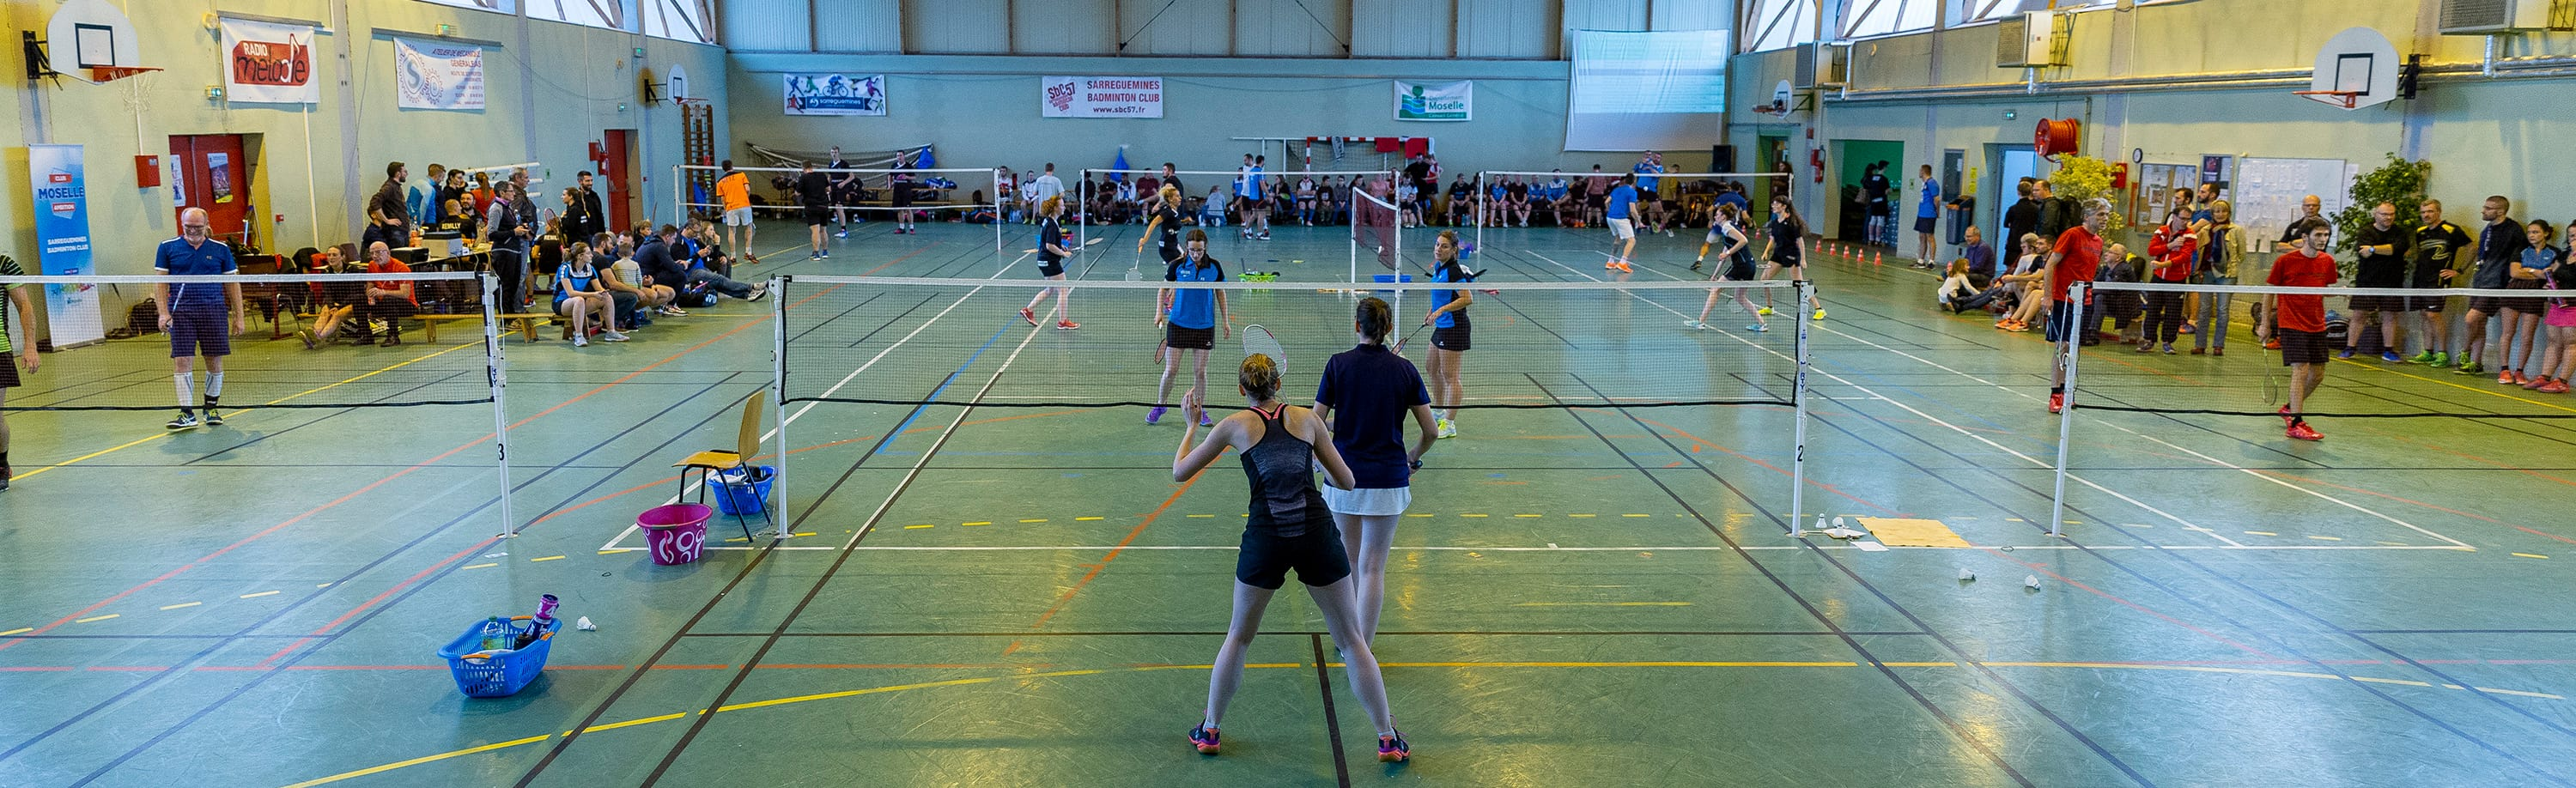 Sarreguemines Badminton Club